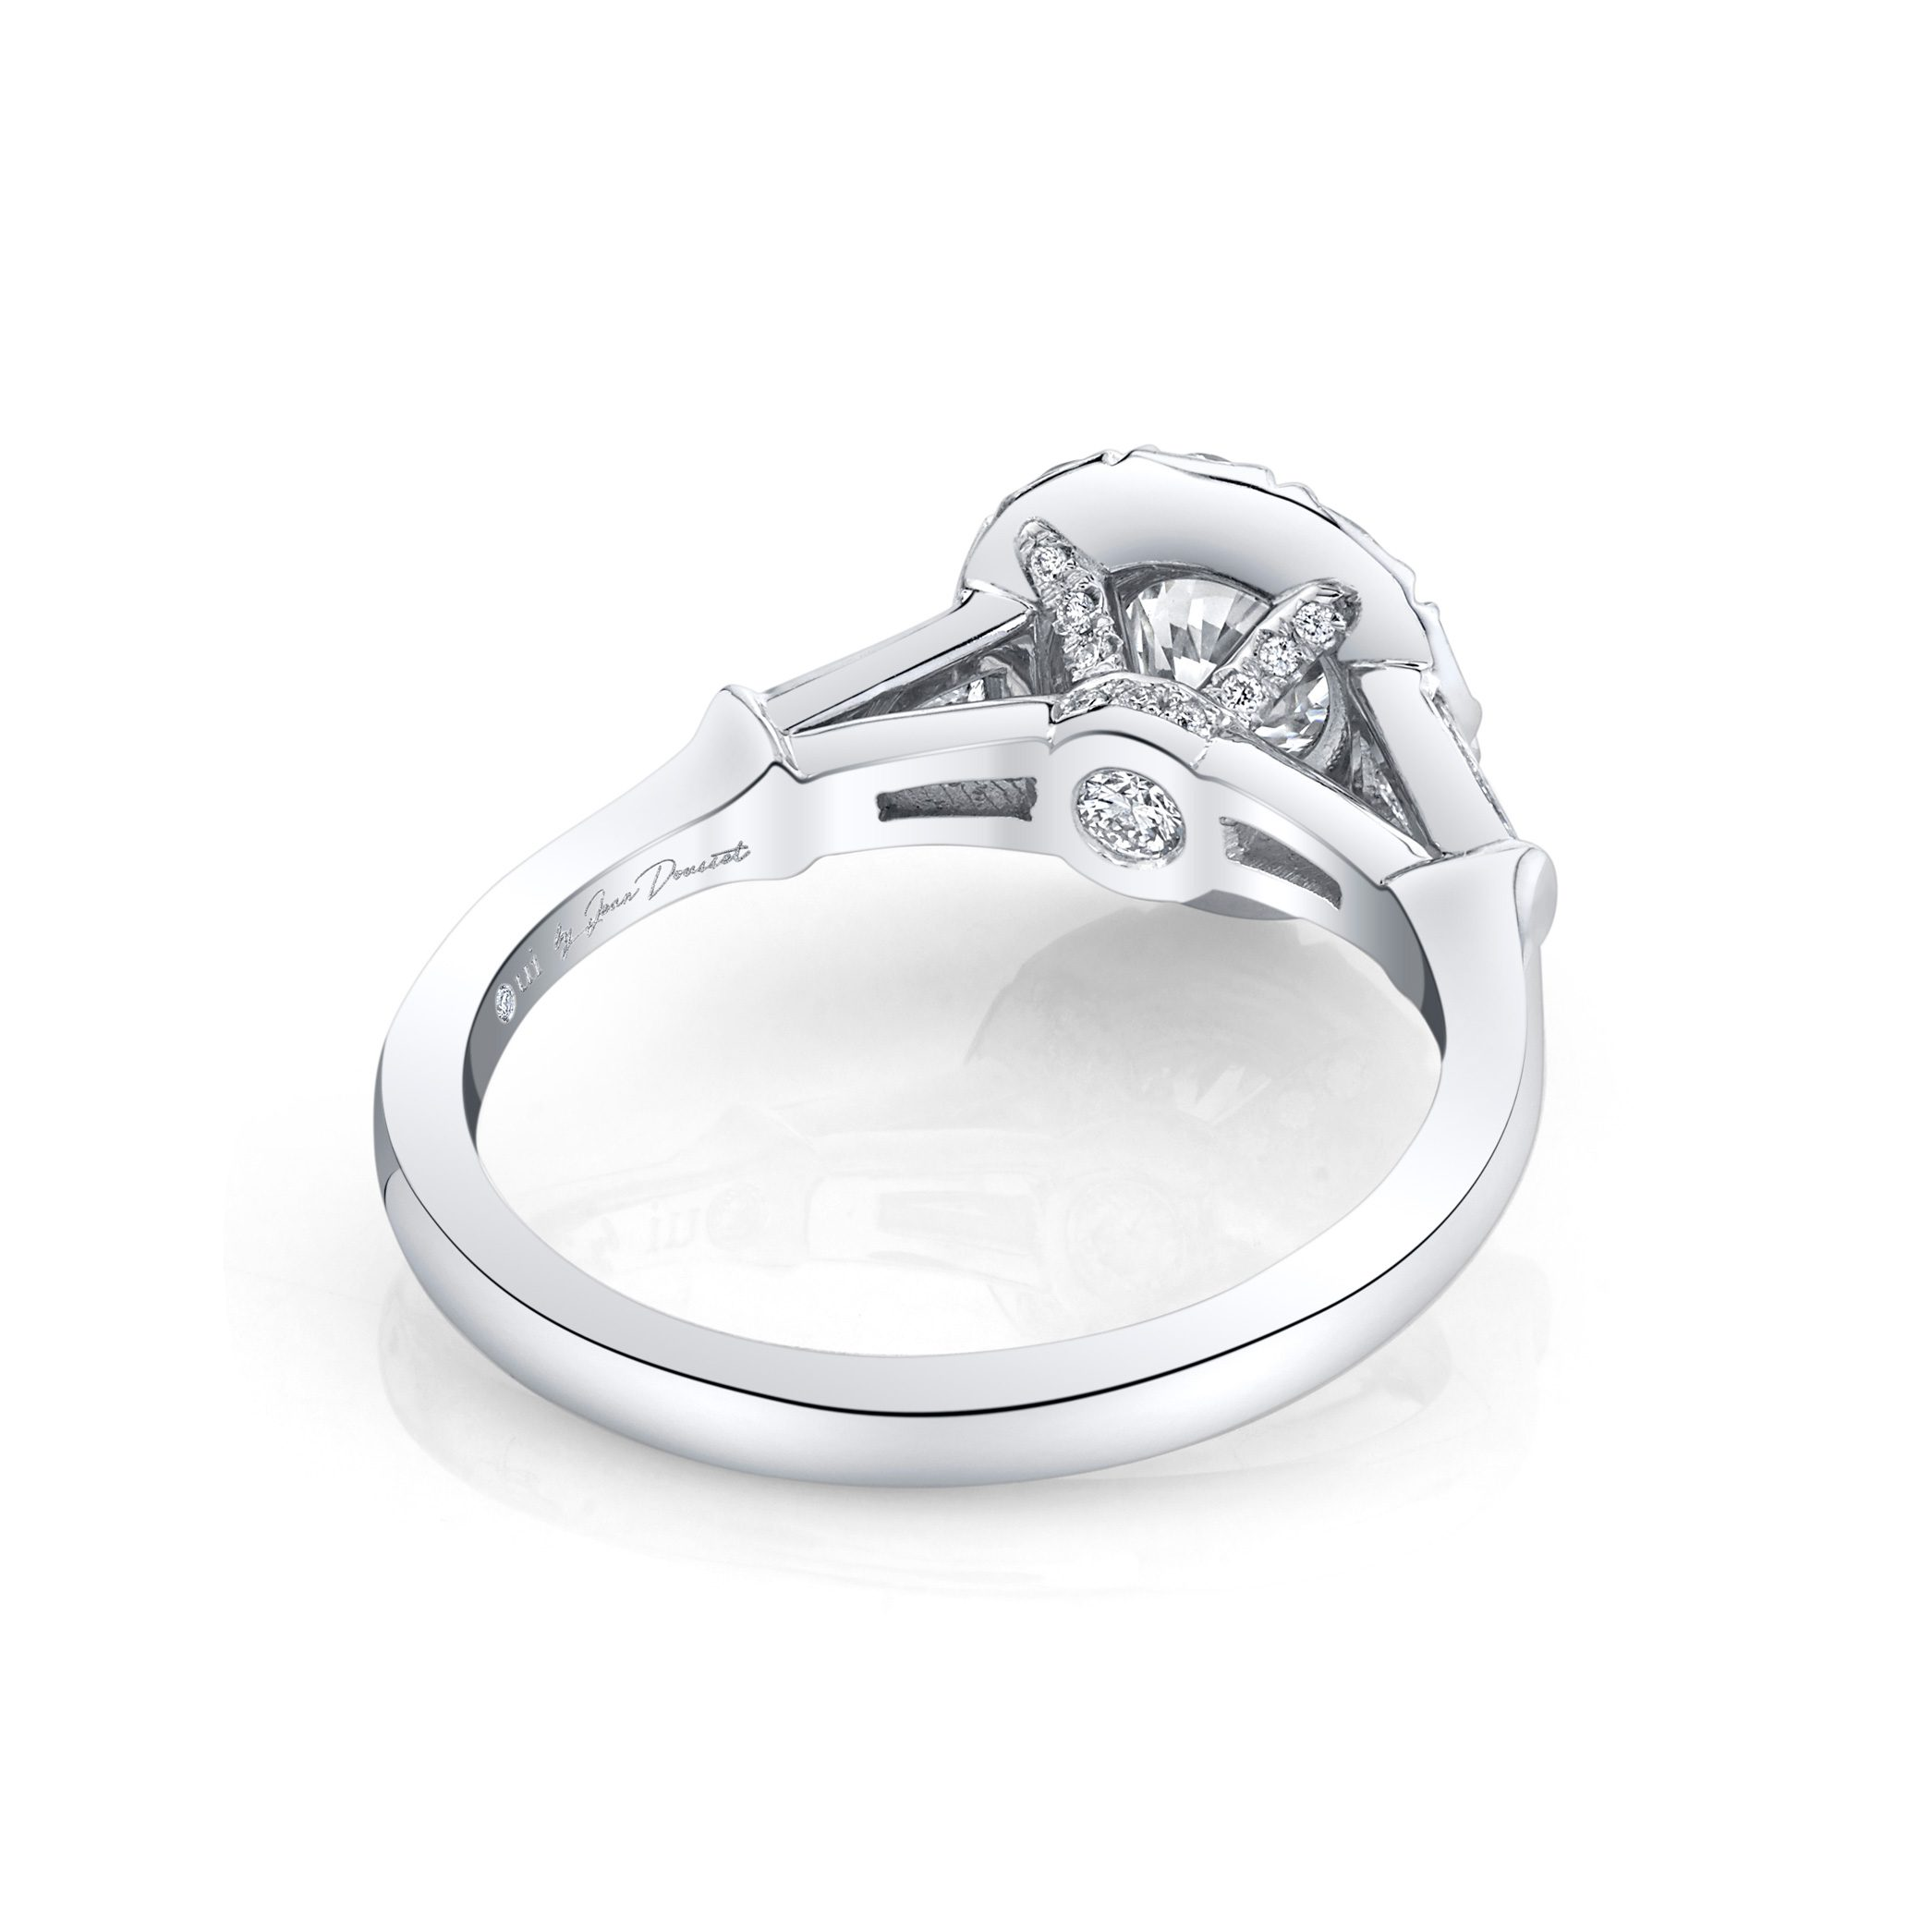 Madeline Round Brilliant Seamless Solitaire® Three Stone Engagement Ring 18k White Gold Back View by Oui by Jean Dousset